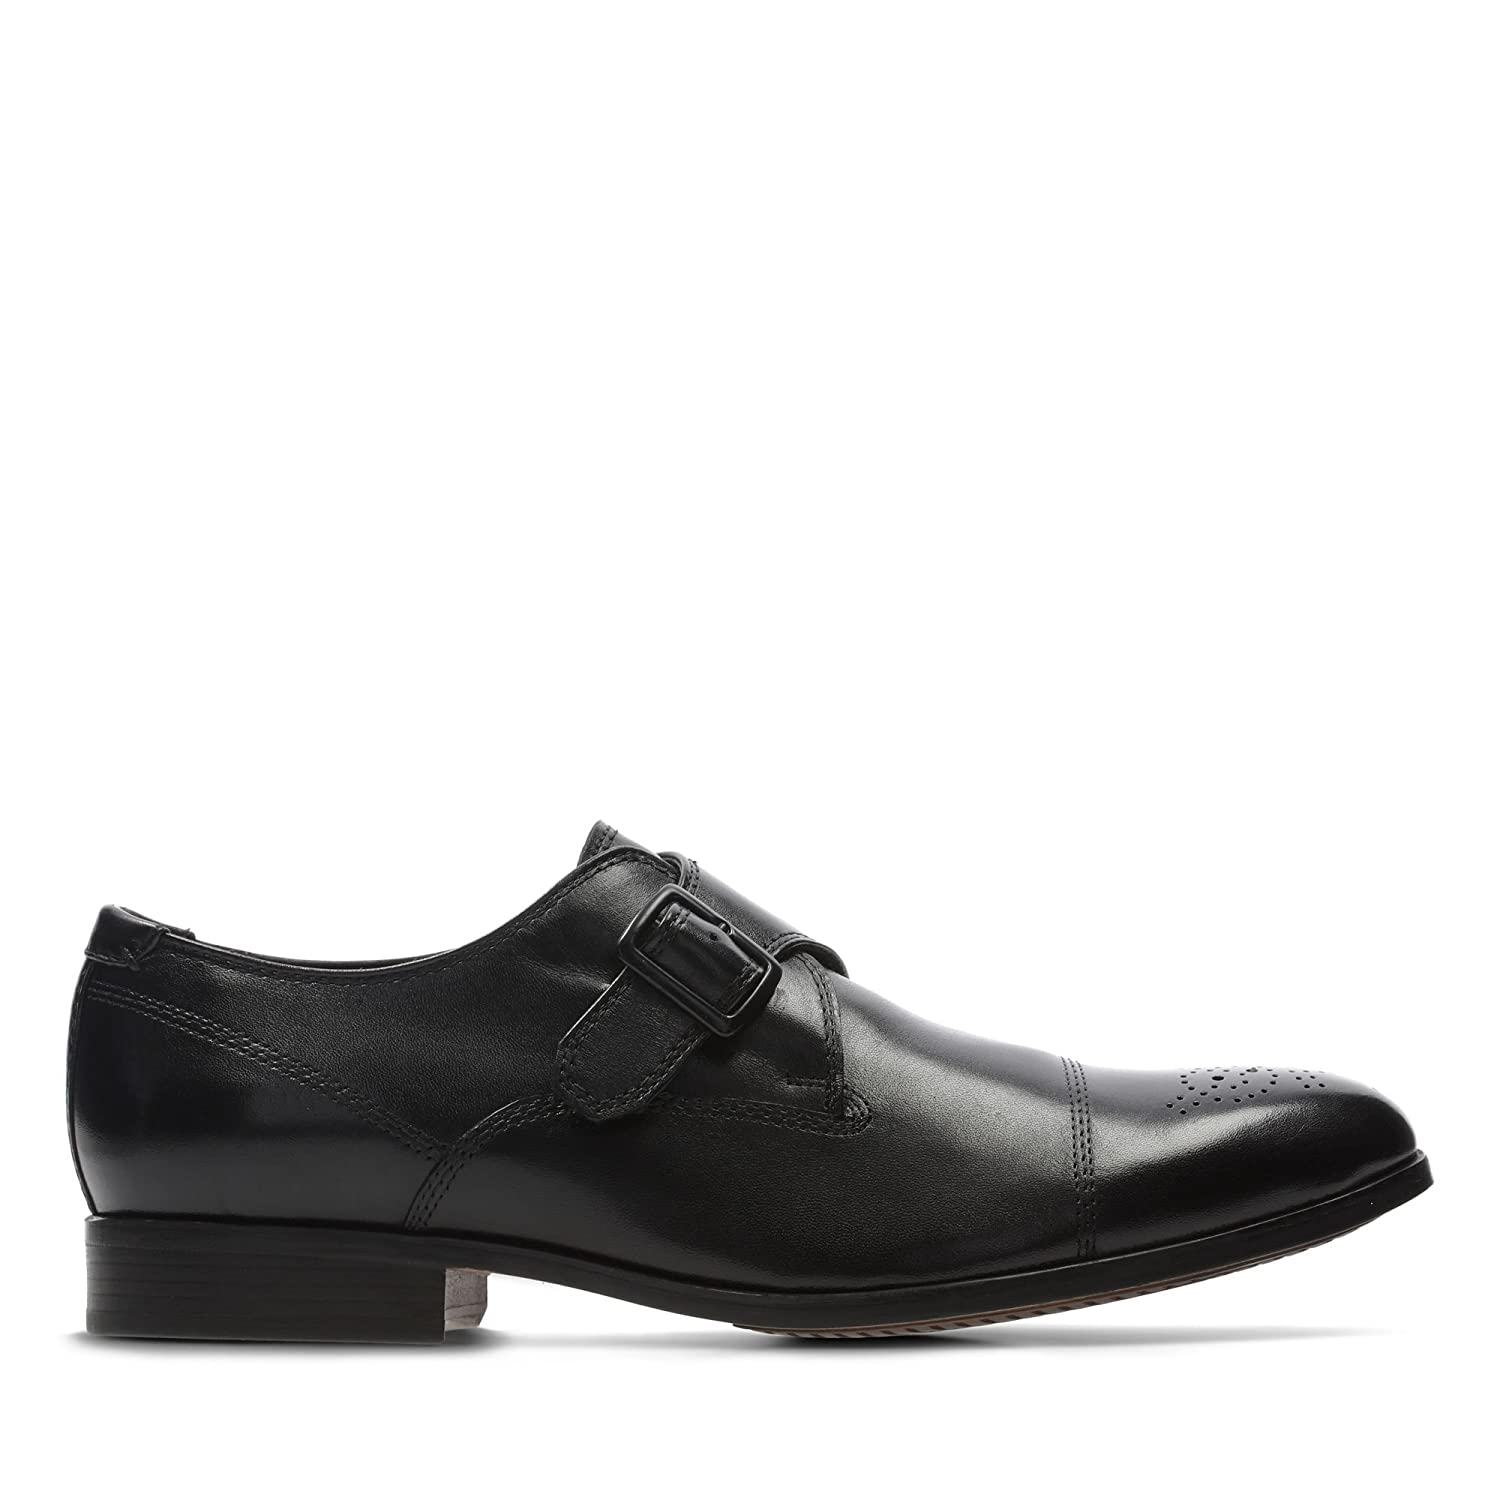 3ede5cddaa4 Clarks Gilmore Monk Leather Shoes in Black Standard Fit Size 6   Amazon.co.uk  Shoes   Bags